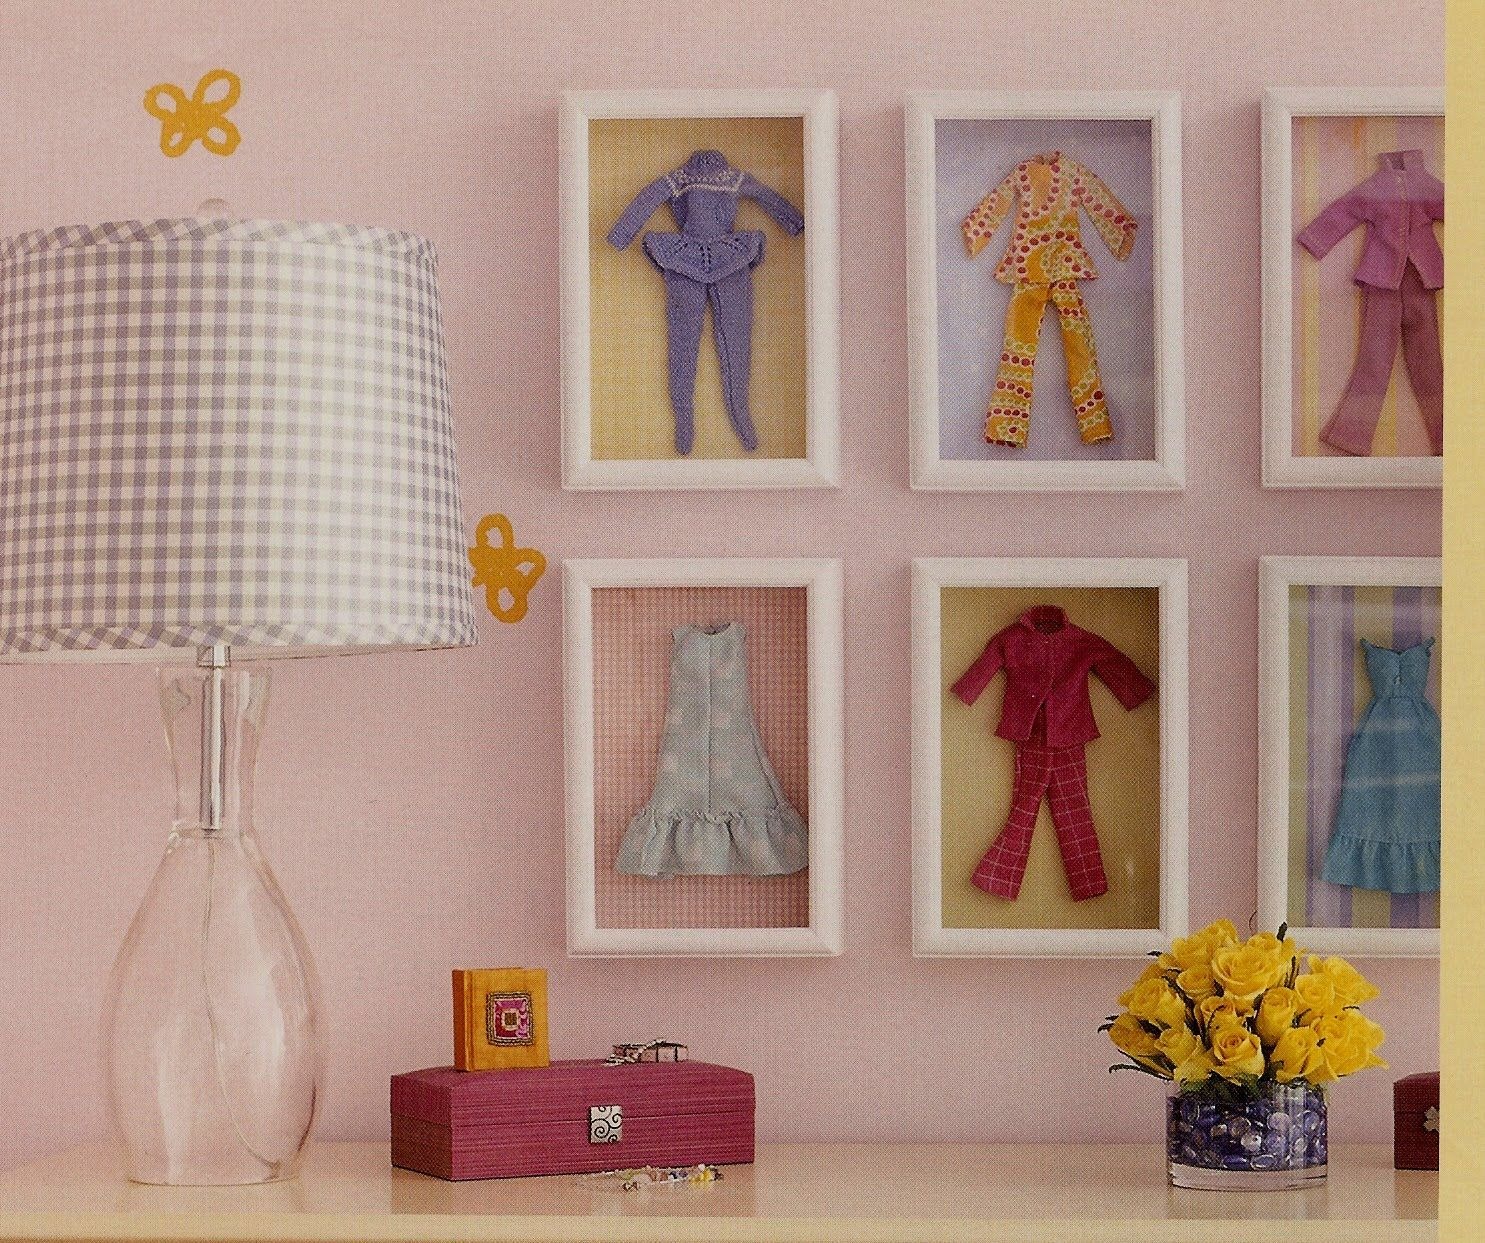 Dormitorio Barbie Cute Idea Vintage Barbie Clothes In Shadowboxes